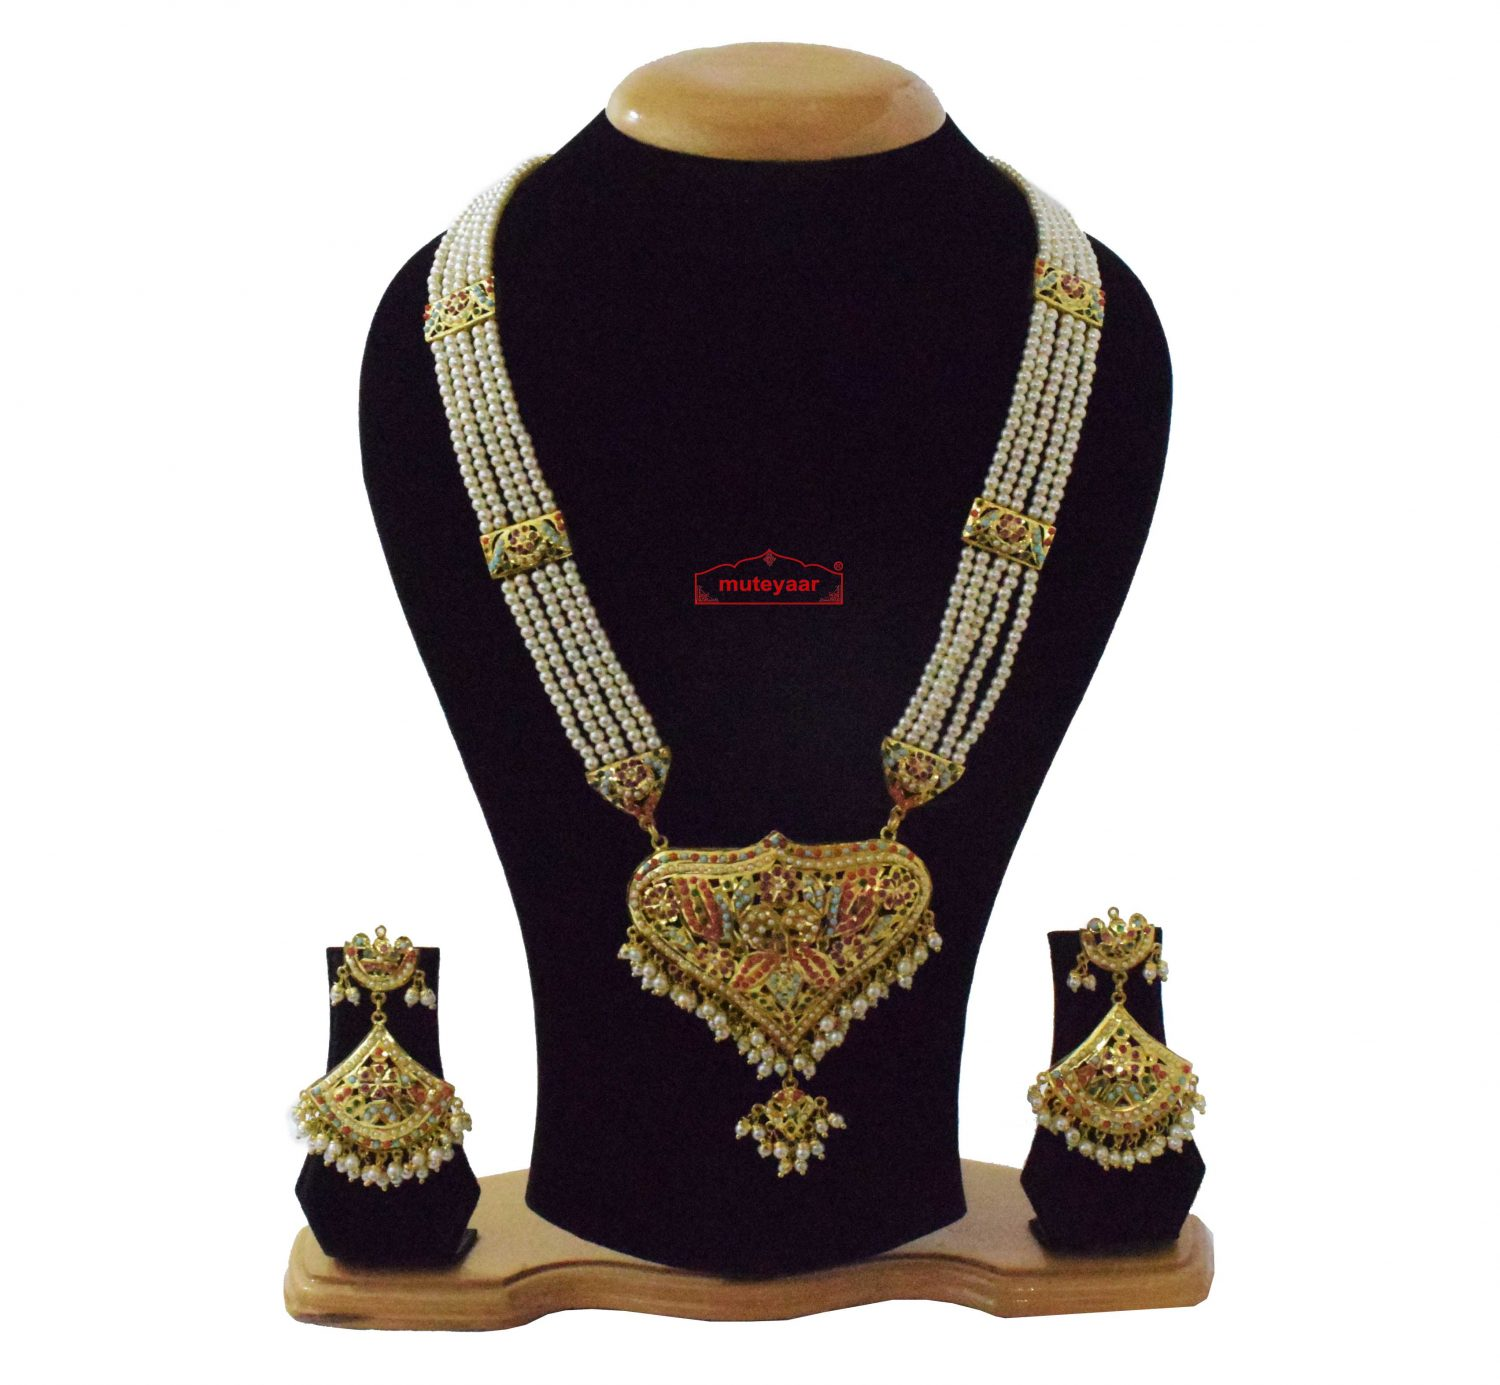 Gold Plated Ranihaar Long Jadau Set J4063 1